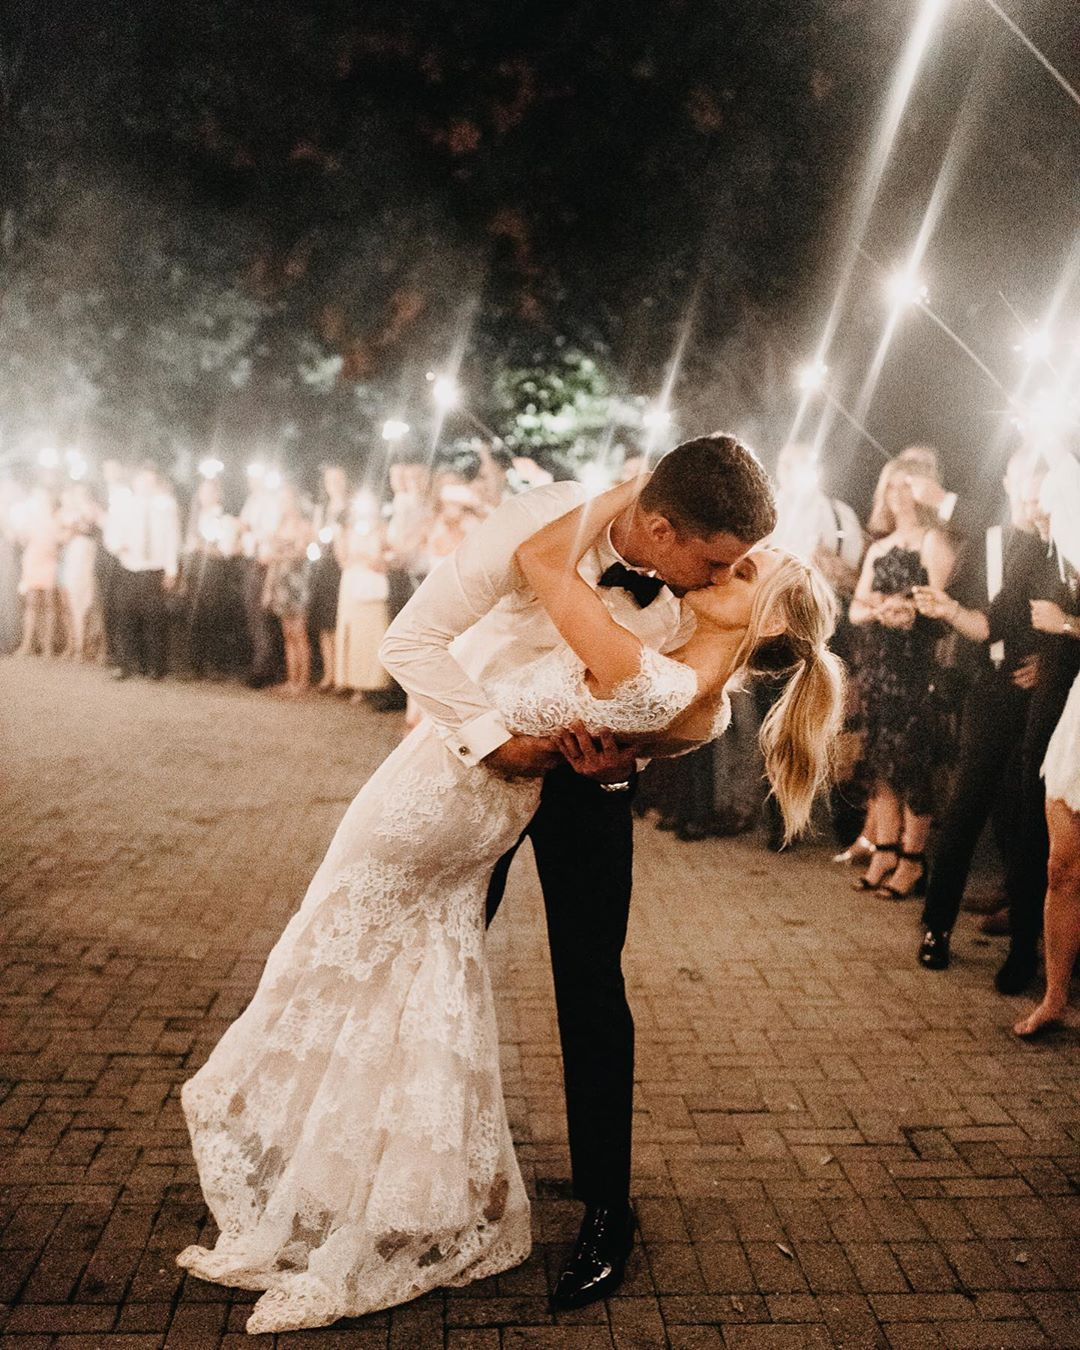 15 1k Likes 217 Comments Ellie Ottaway Josi Eottaway On Instagram The Most Perfect Day Wedding Pictures Couple Photos Instagram